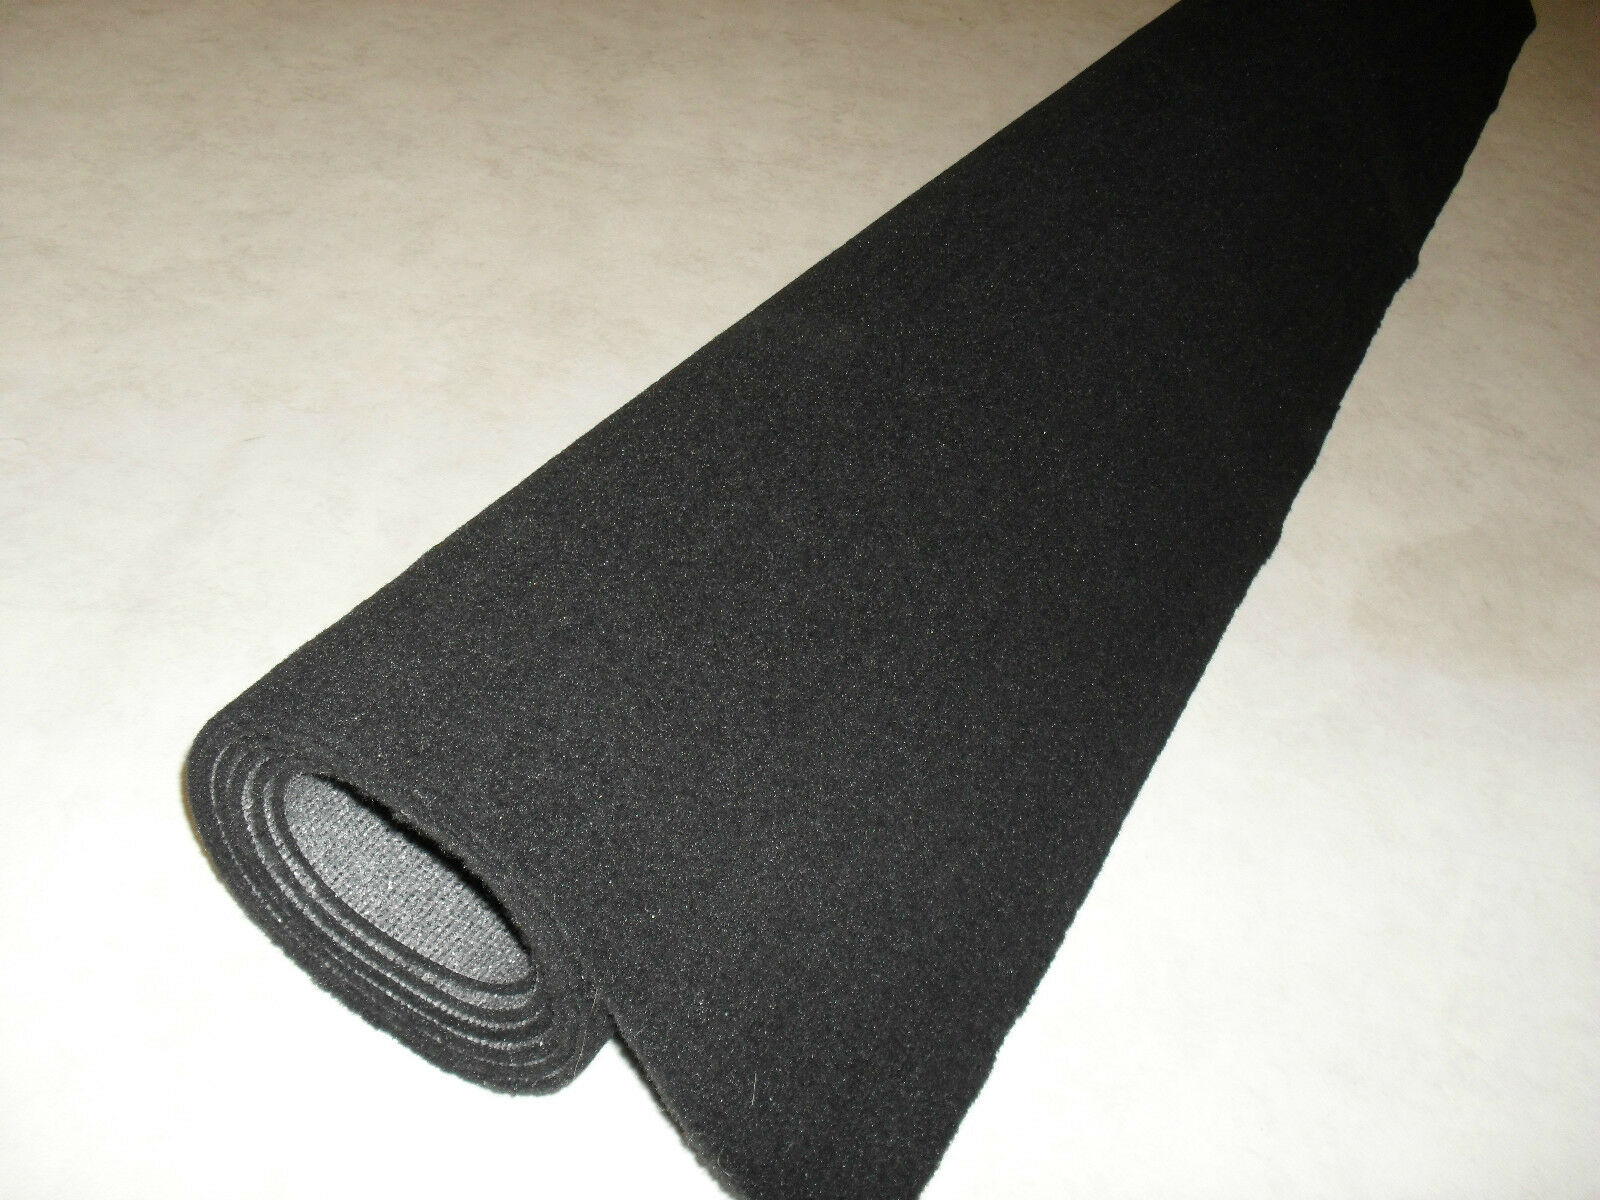 Car Parts - CAR CARPET SHEETS in Anthracite/Black Luxury Quality.